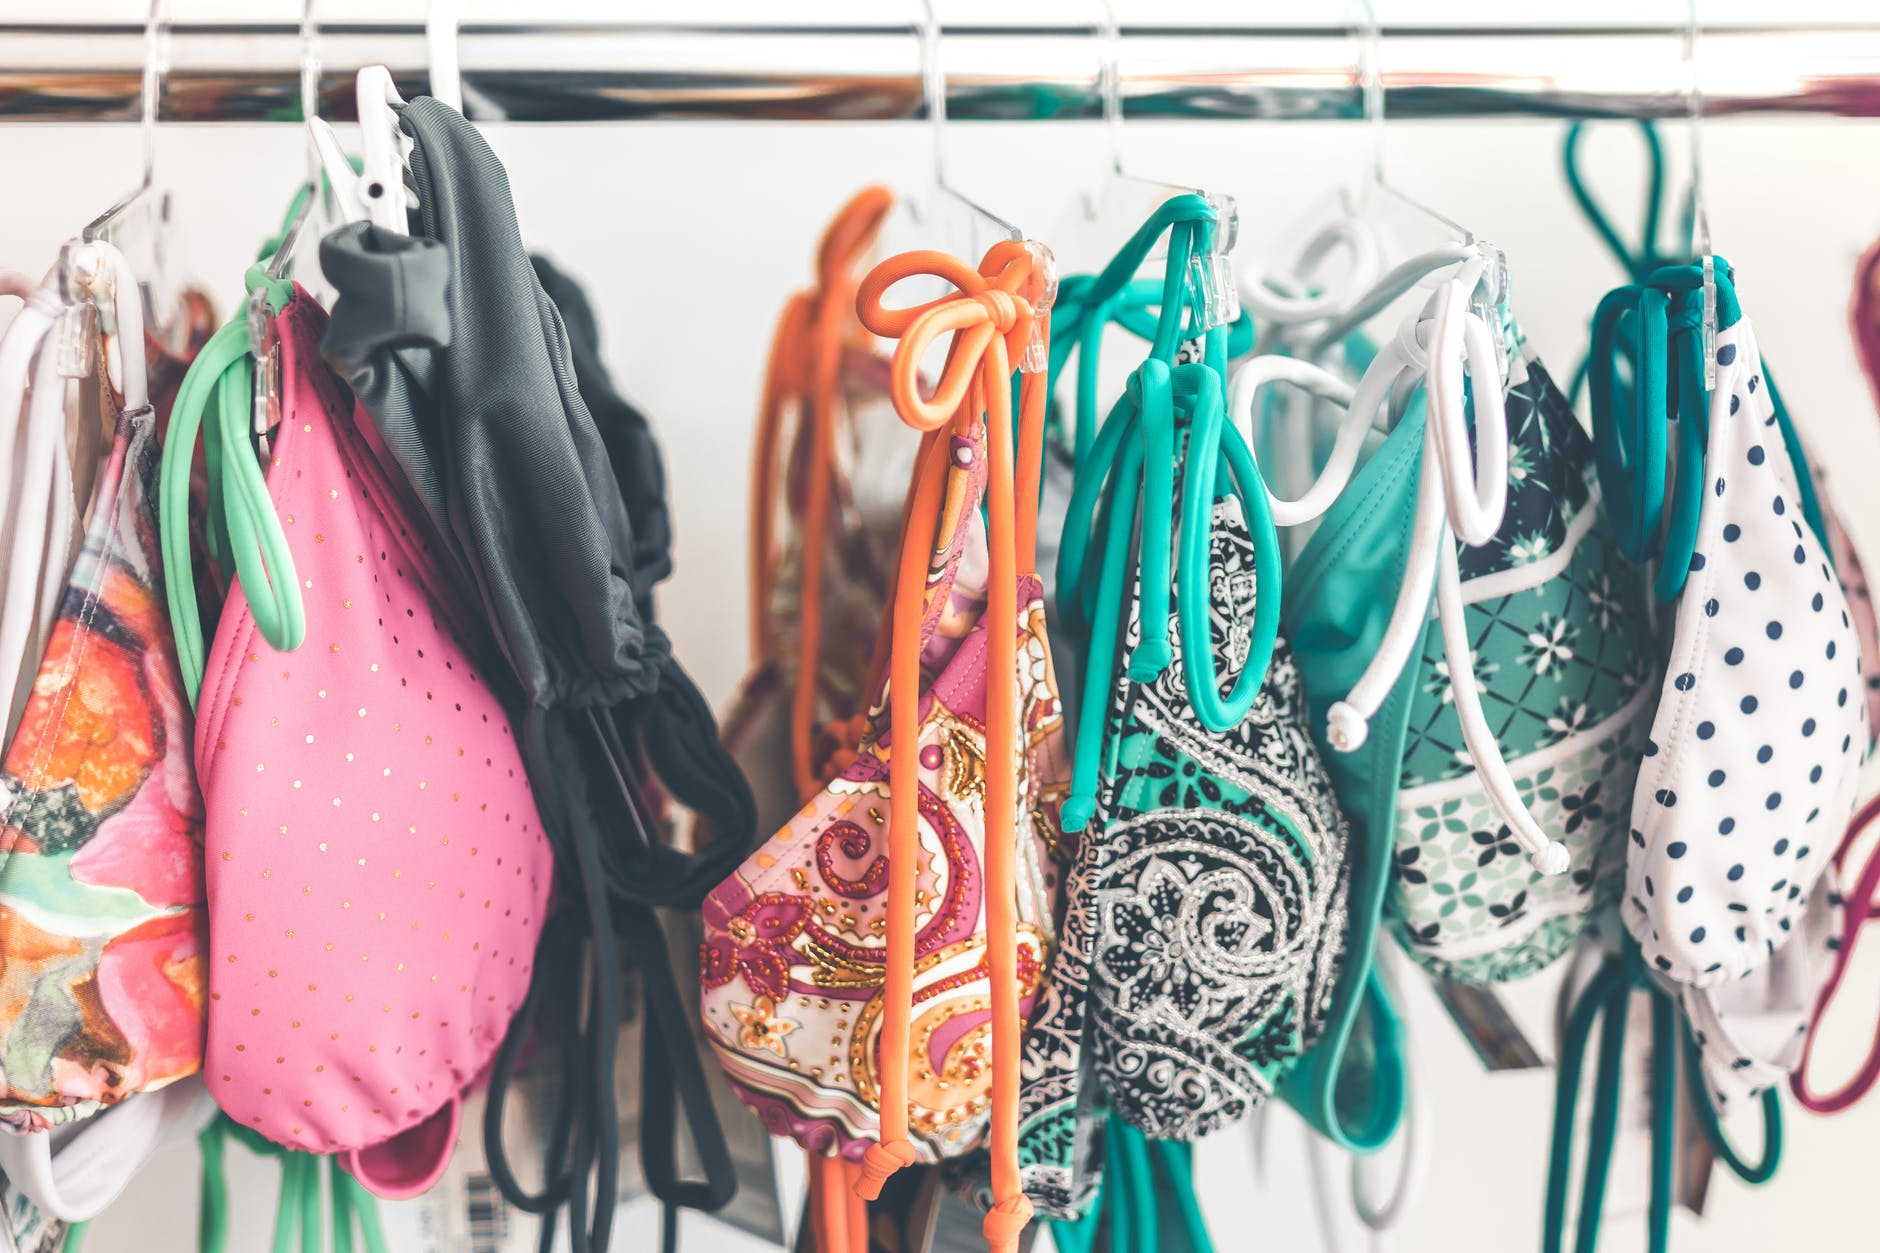 5 Essential Rules To Follow For Swimwear Shopping